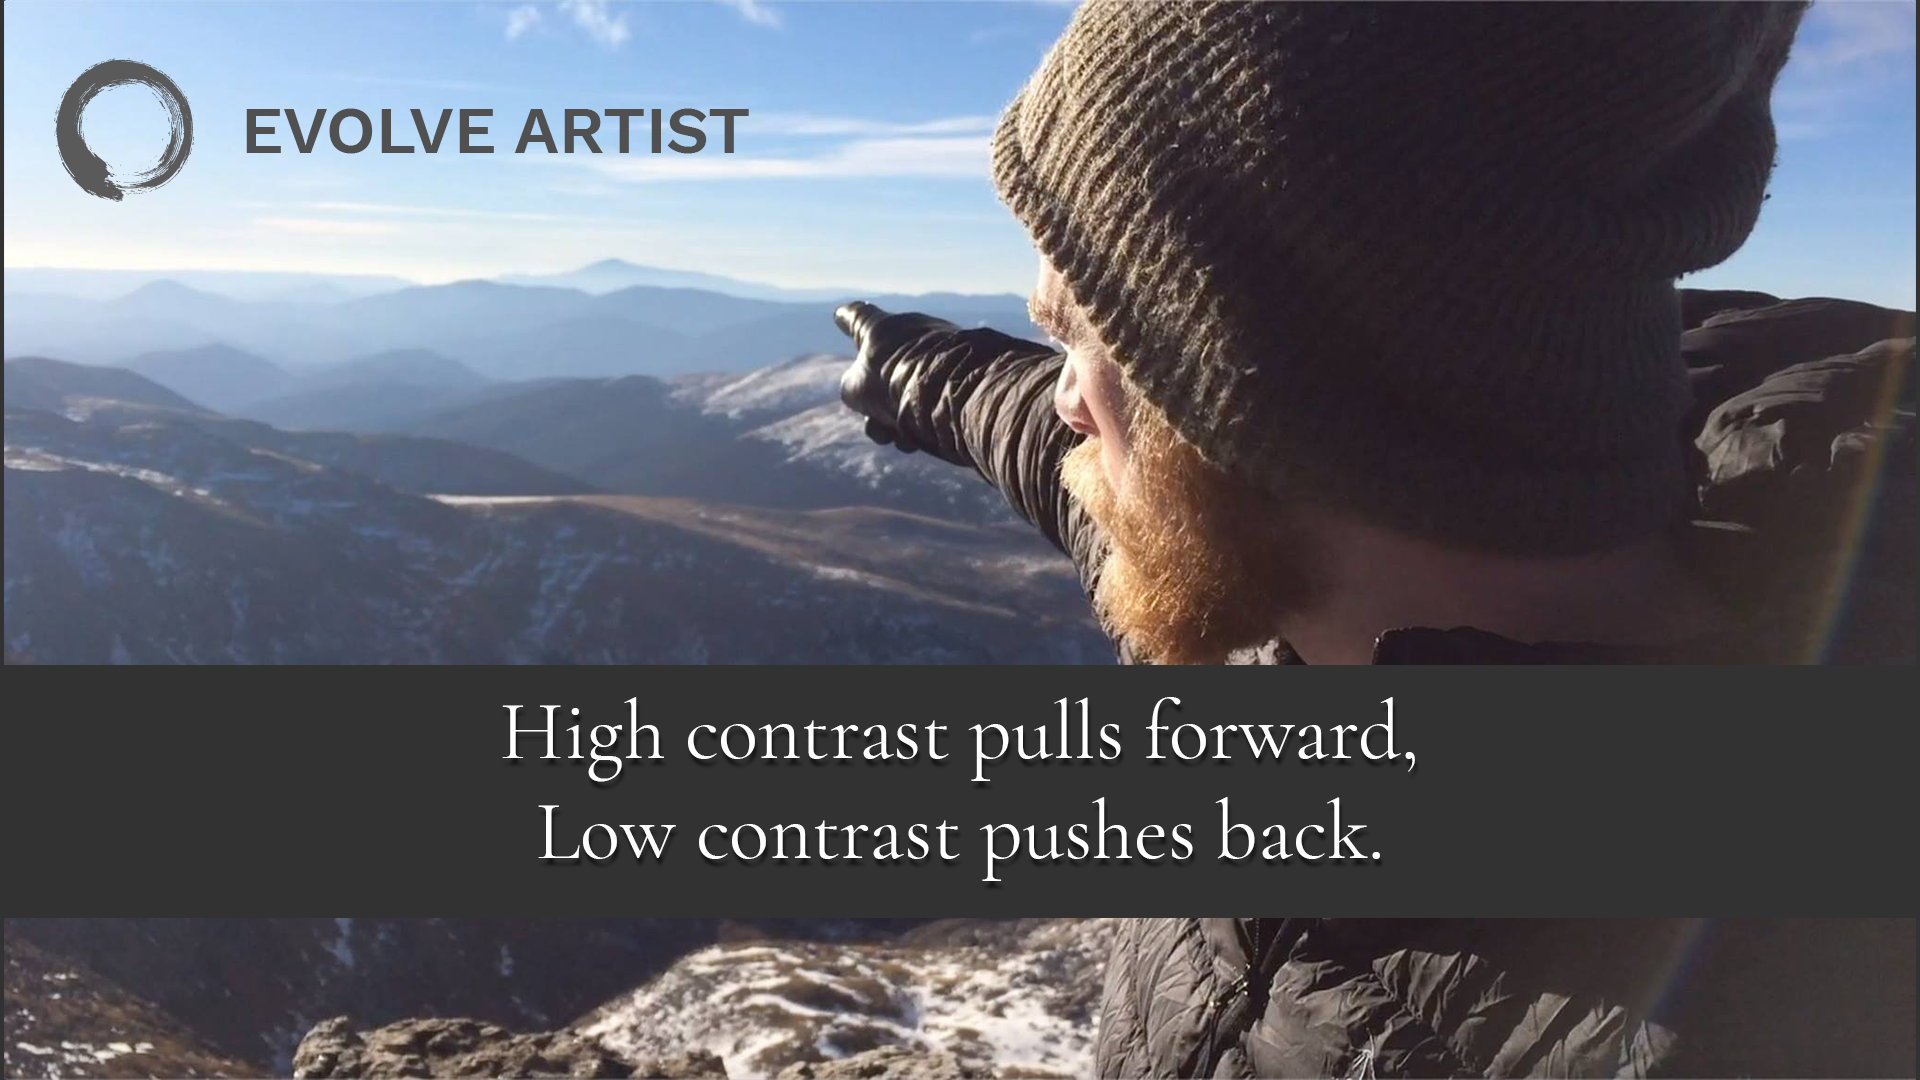 Photo shows that high contrast pulls forward and low contrast pushes back